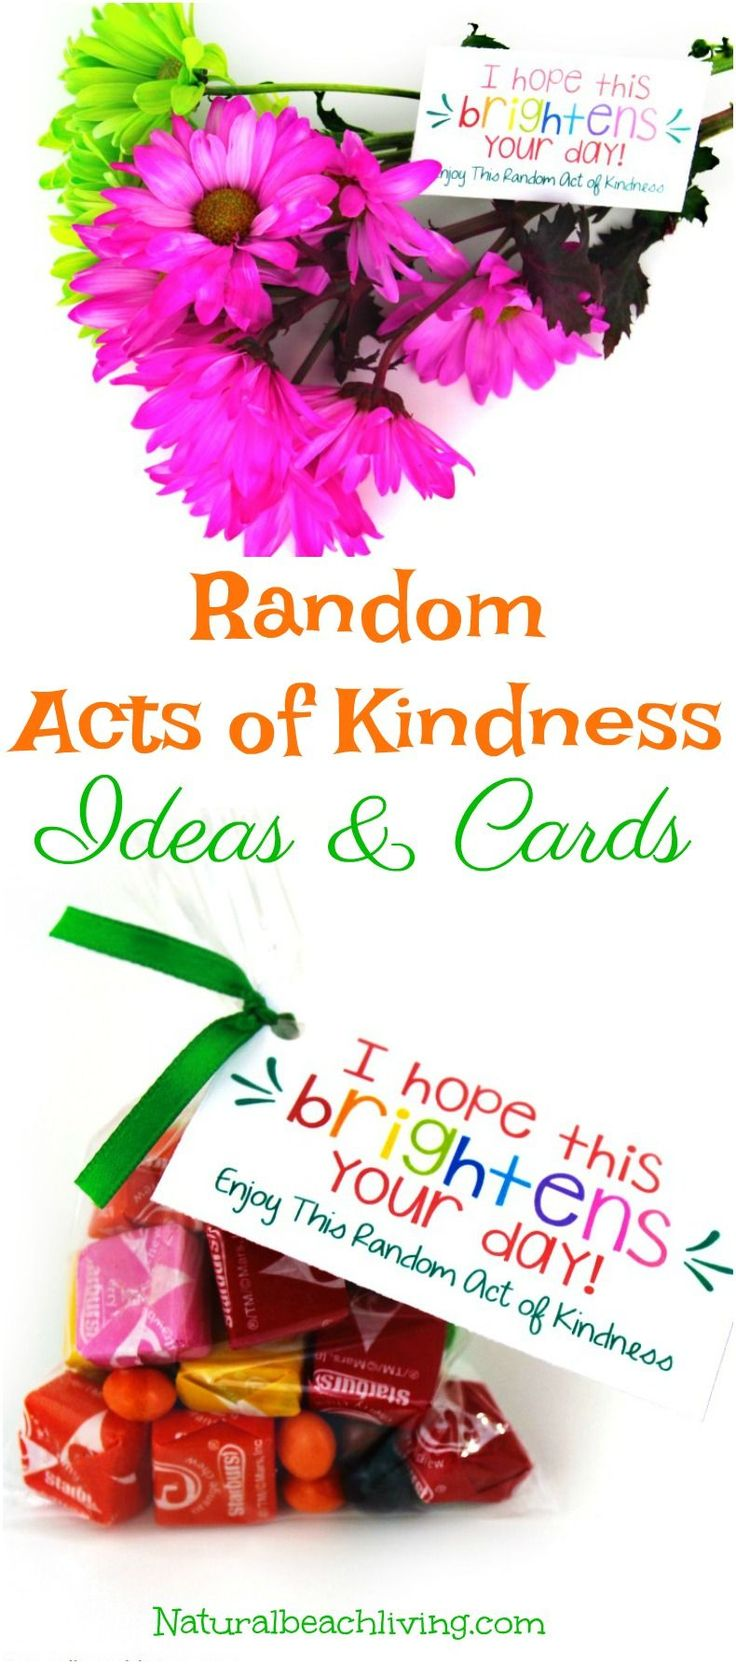 Random Acts of Kindness Printable Cards can be fun for the whole family, Get your kids involved in spreading kindness, Acts of Kindness Gift ideas and free printables #RAOK #randomactsofkindness #kindness